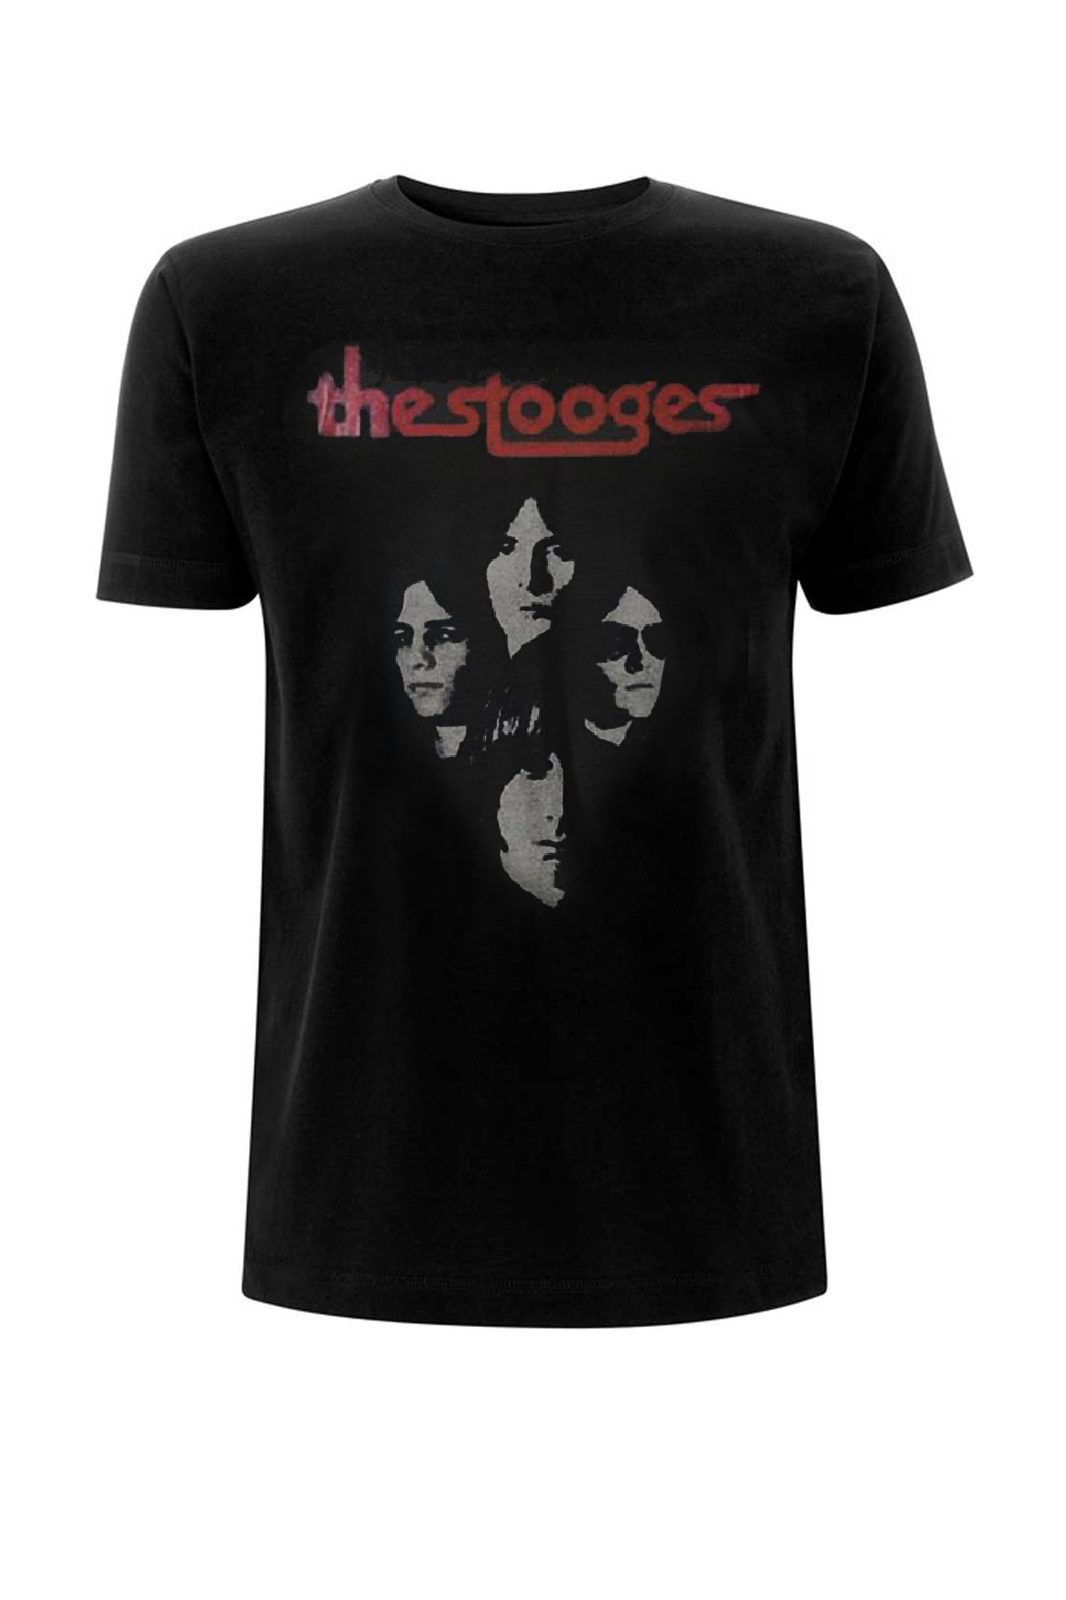 Tee Stooges the Faces Black